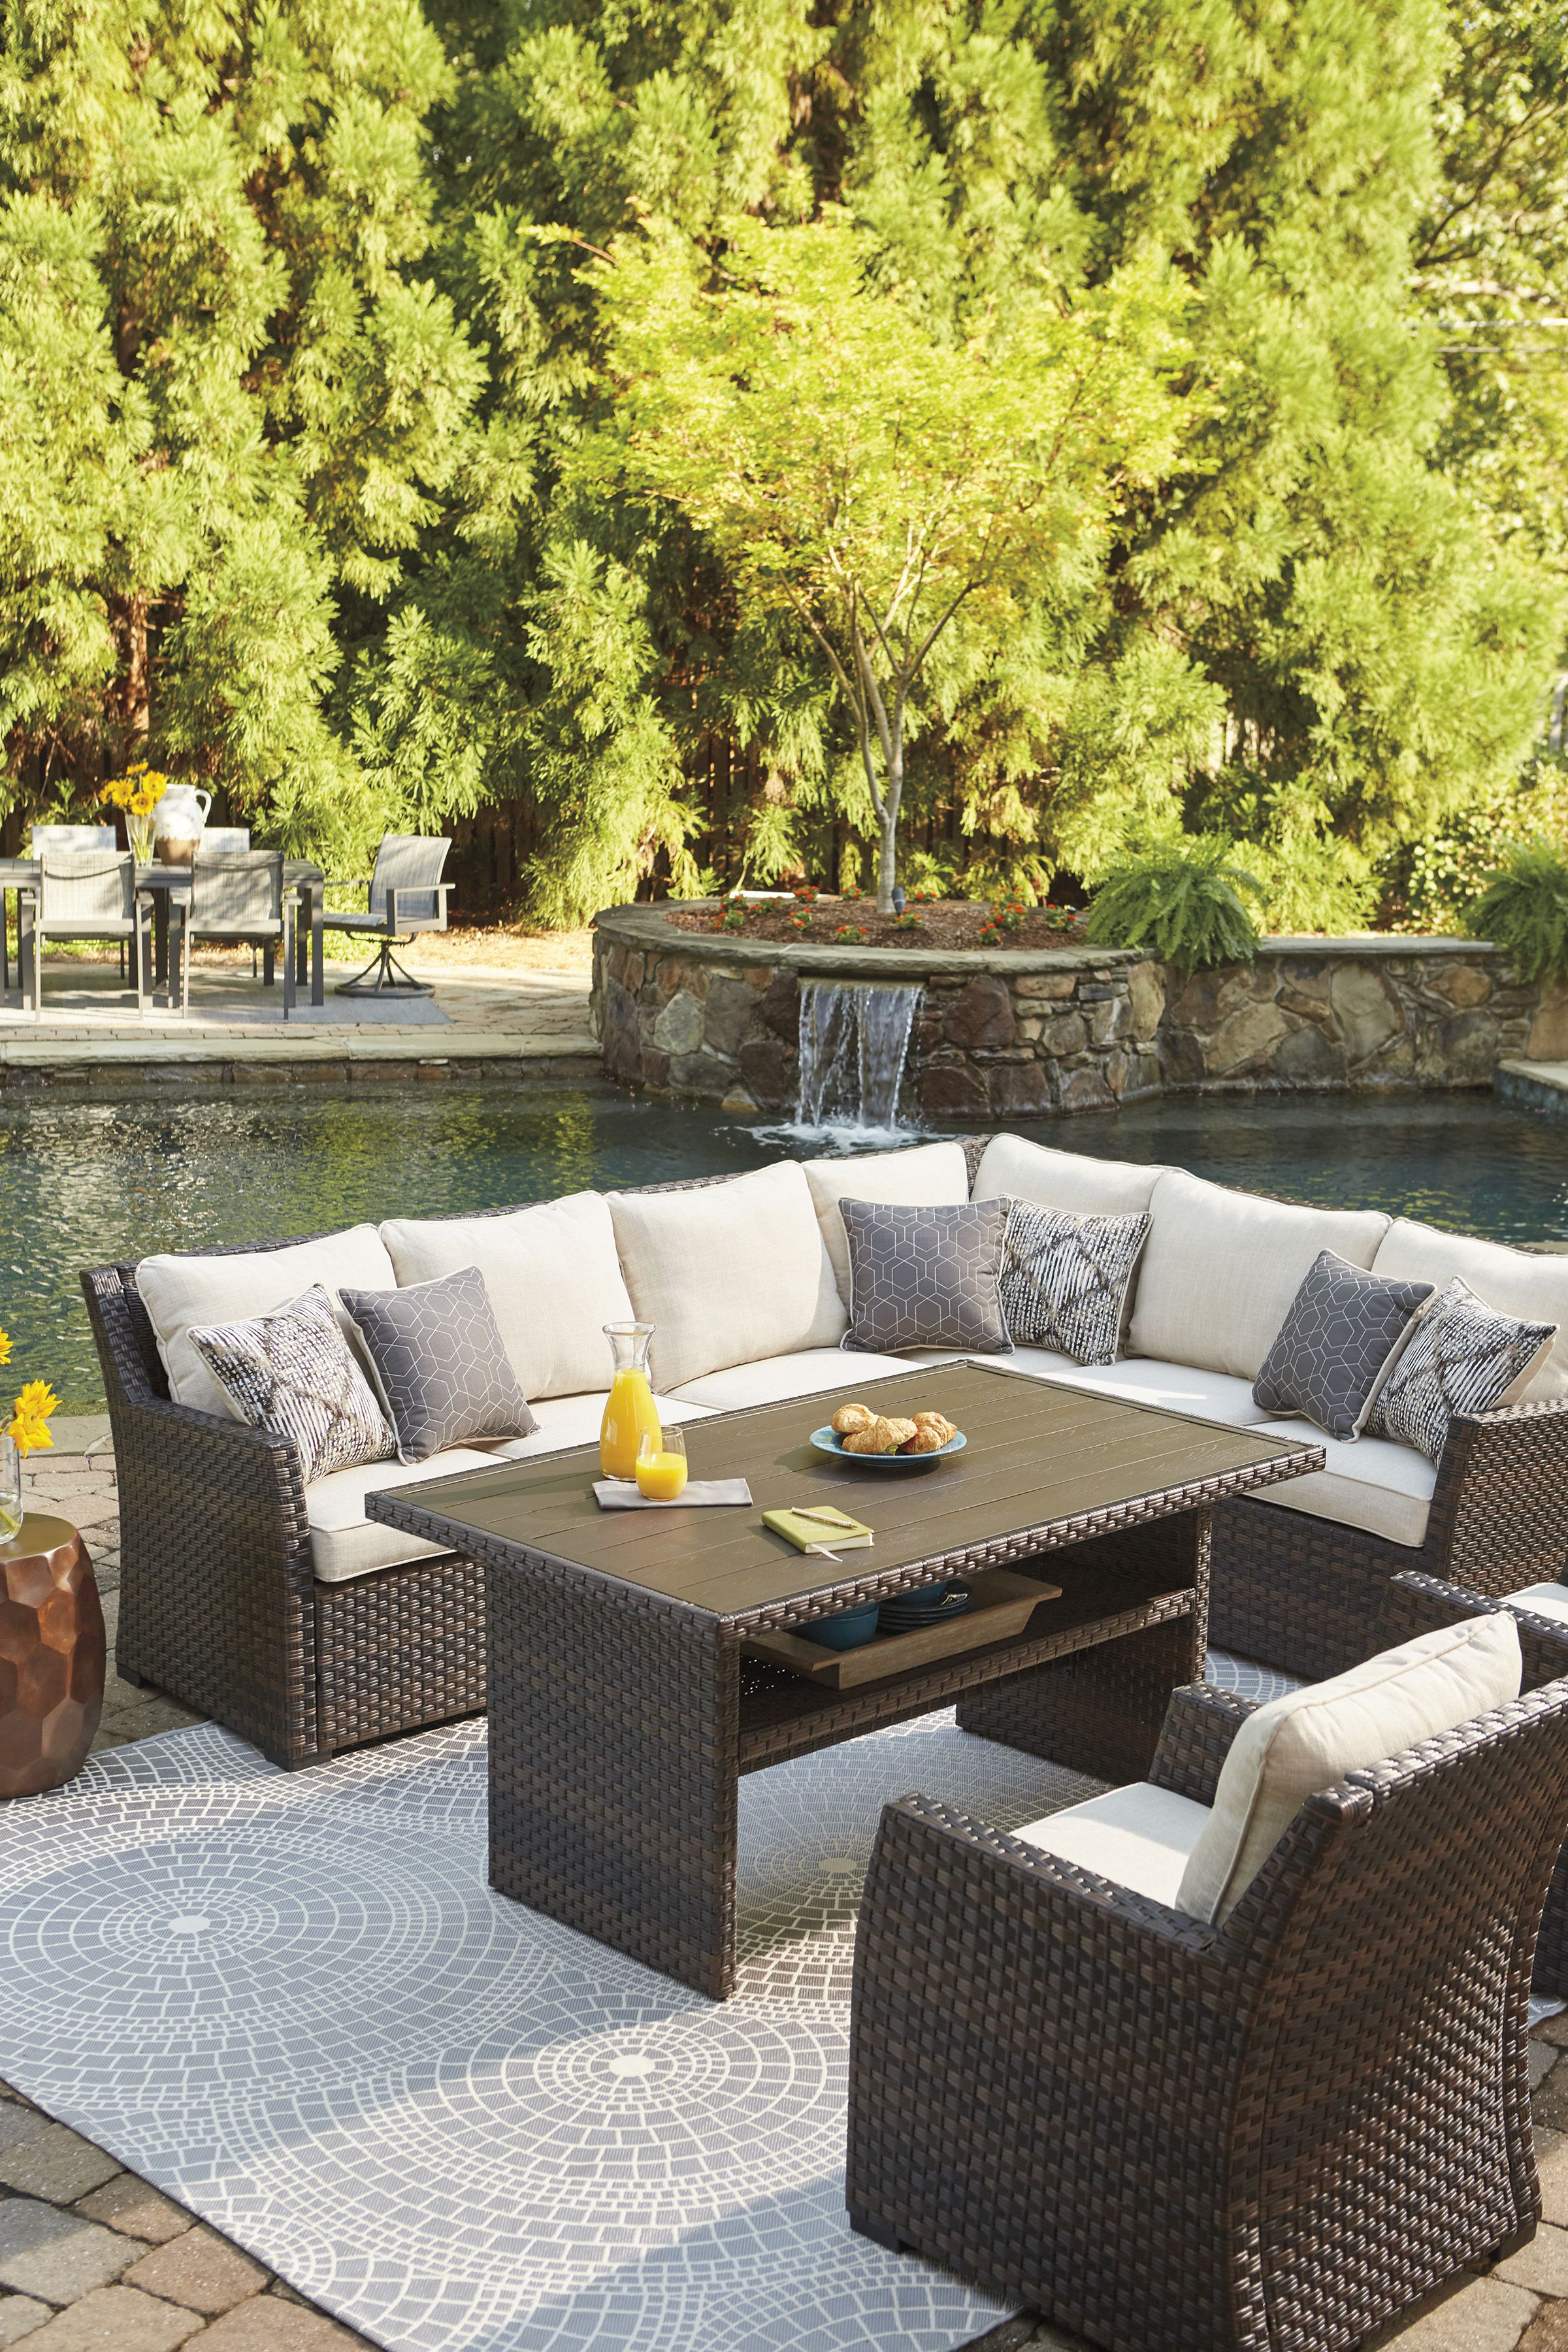 Easy Isle Outdoor Sectional Dining Table Collection In 2020